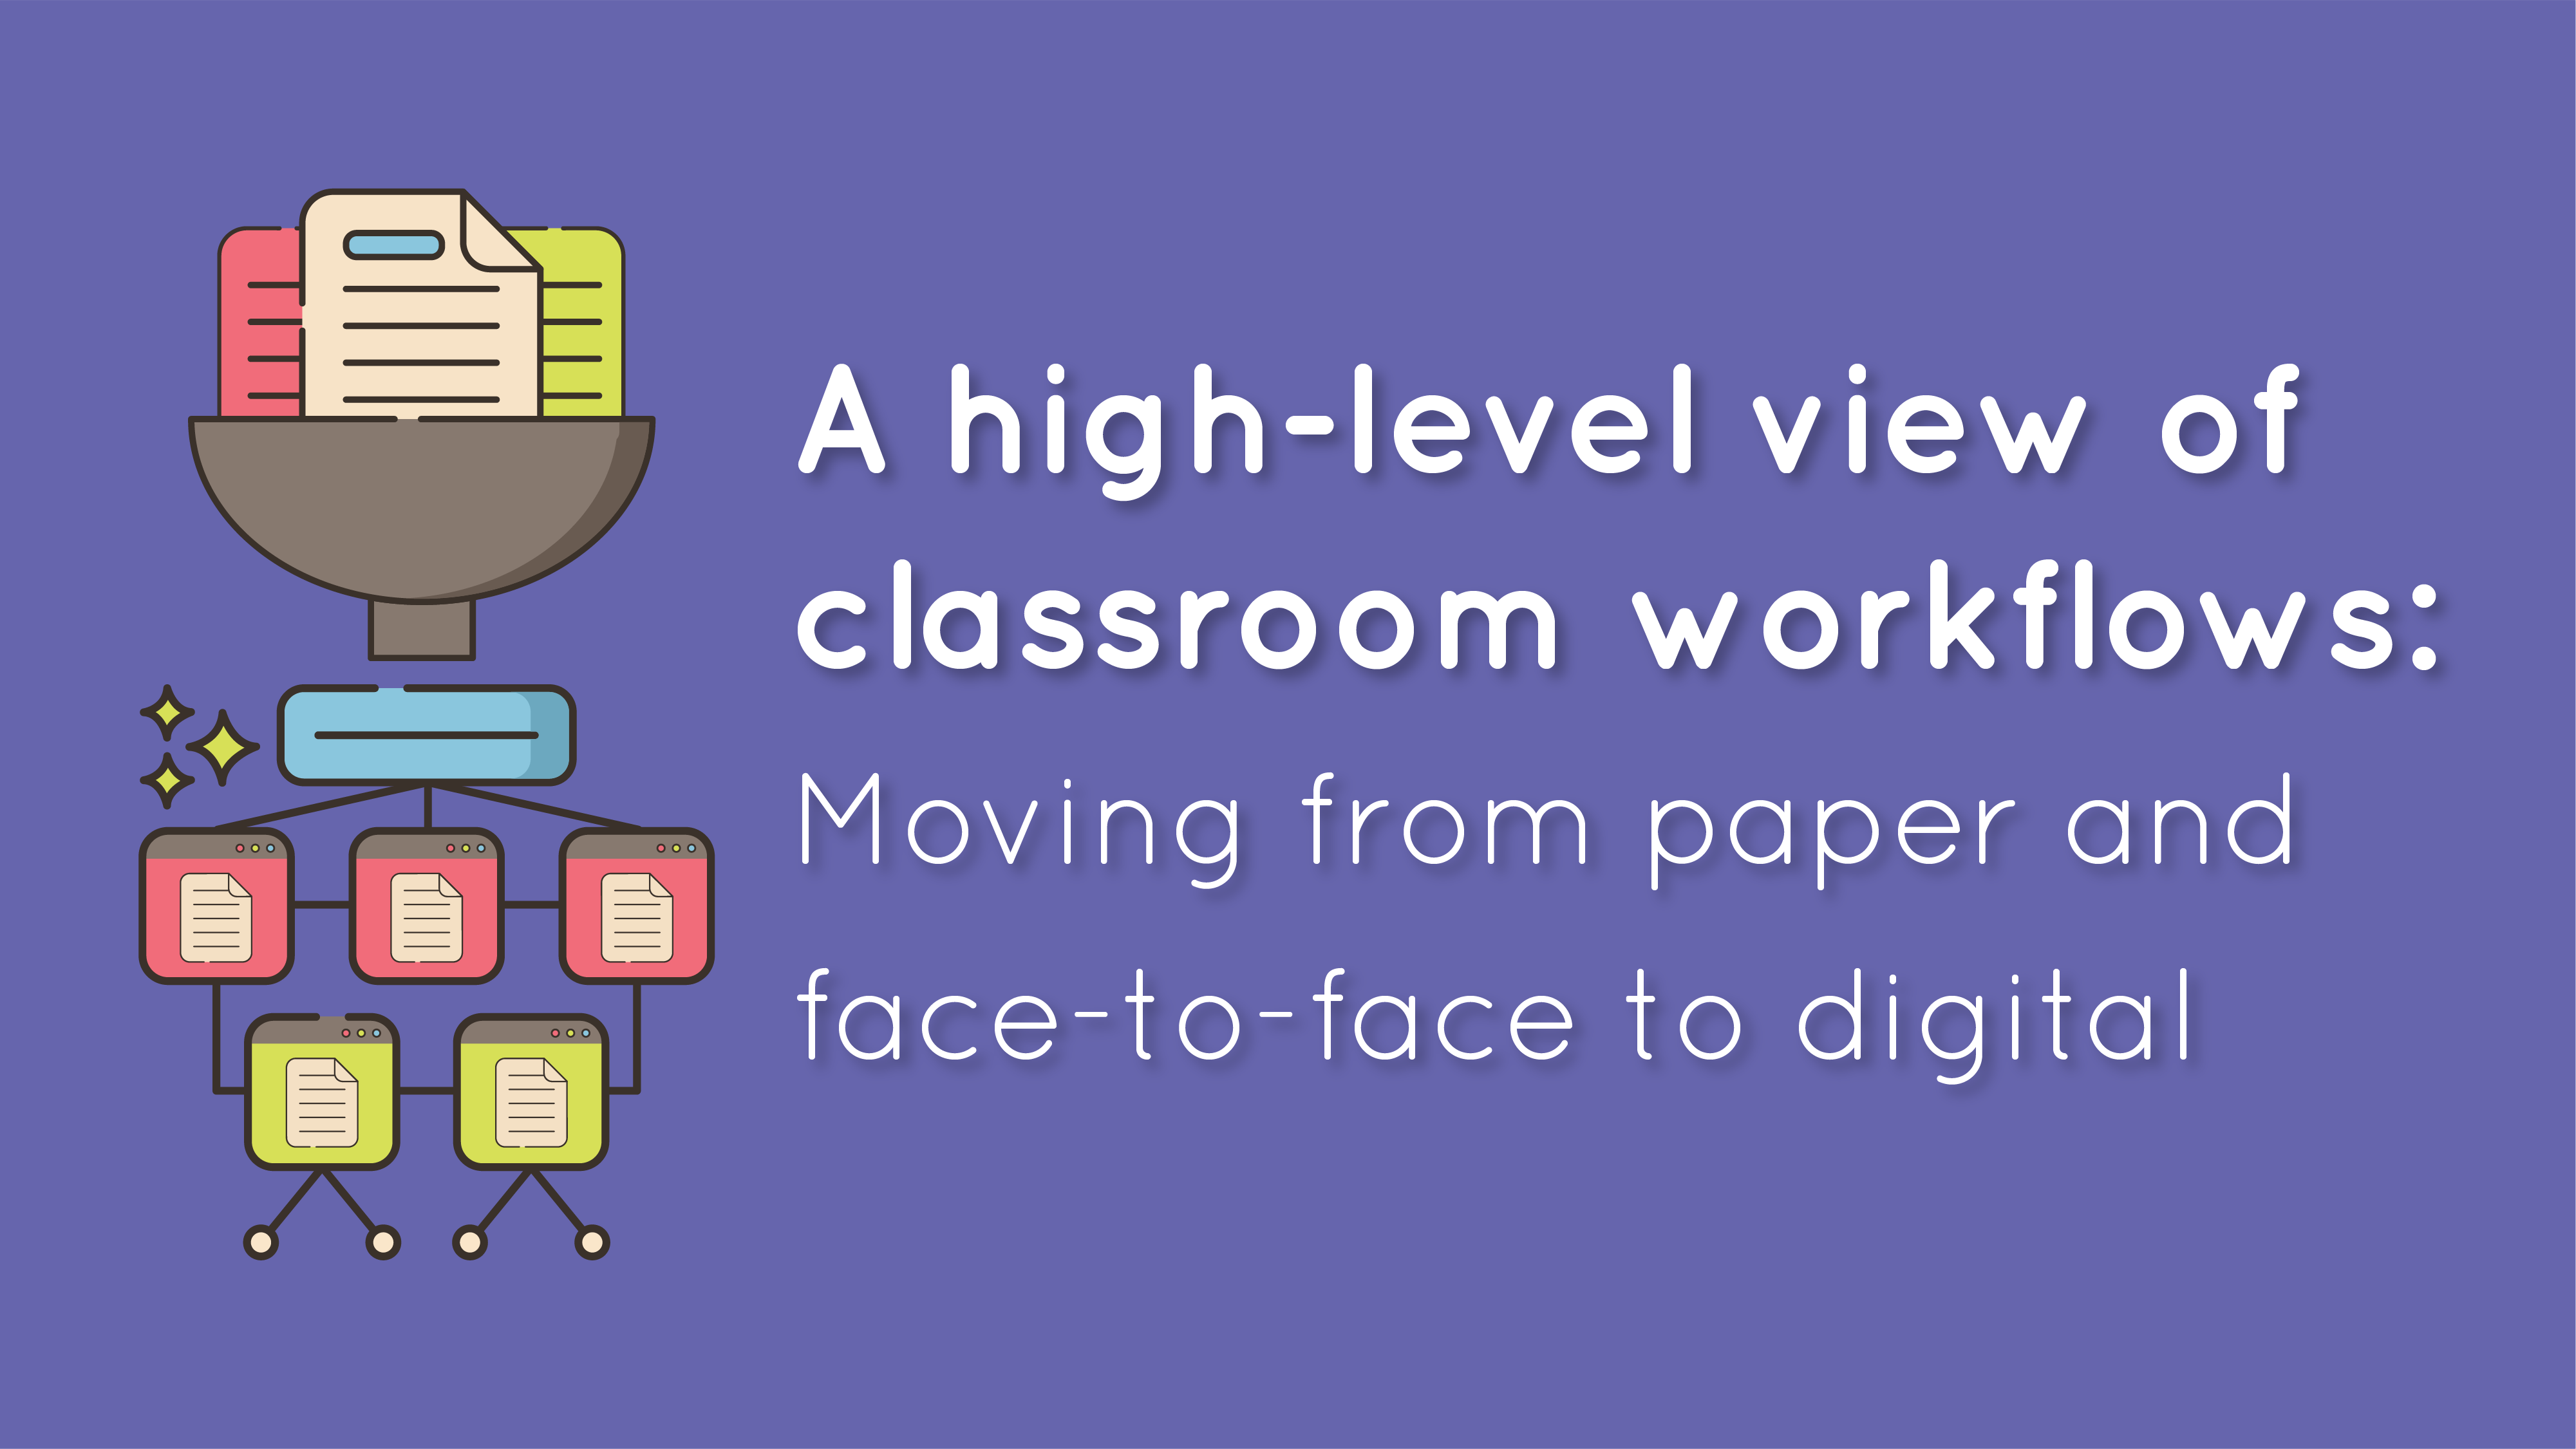 A high-level view of classroom workflows